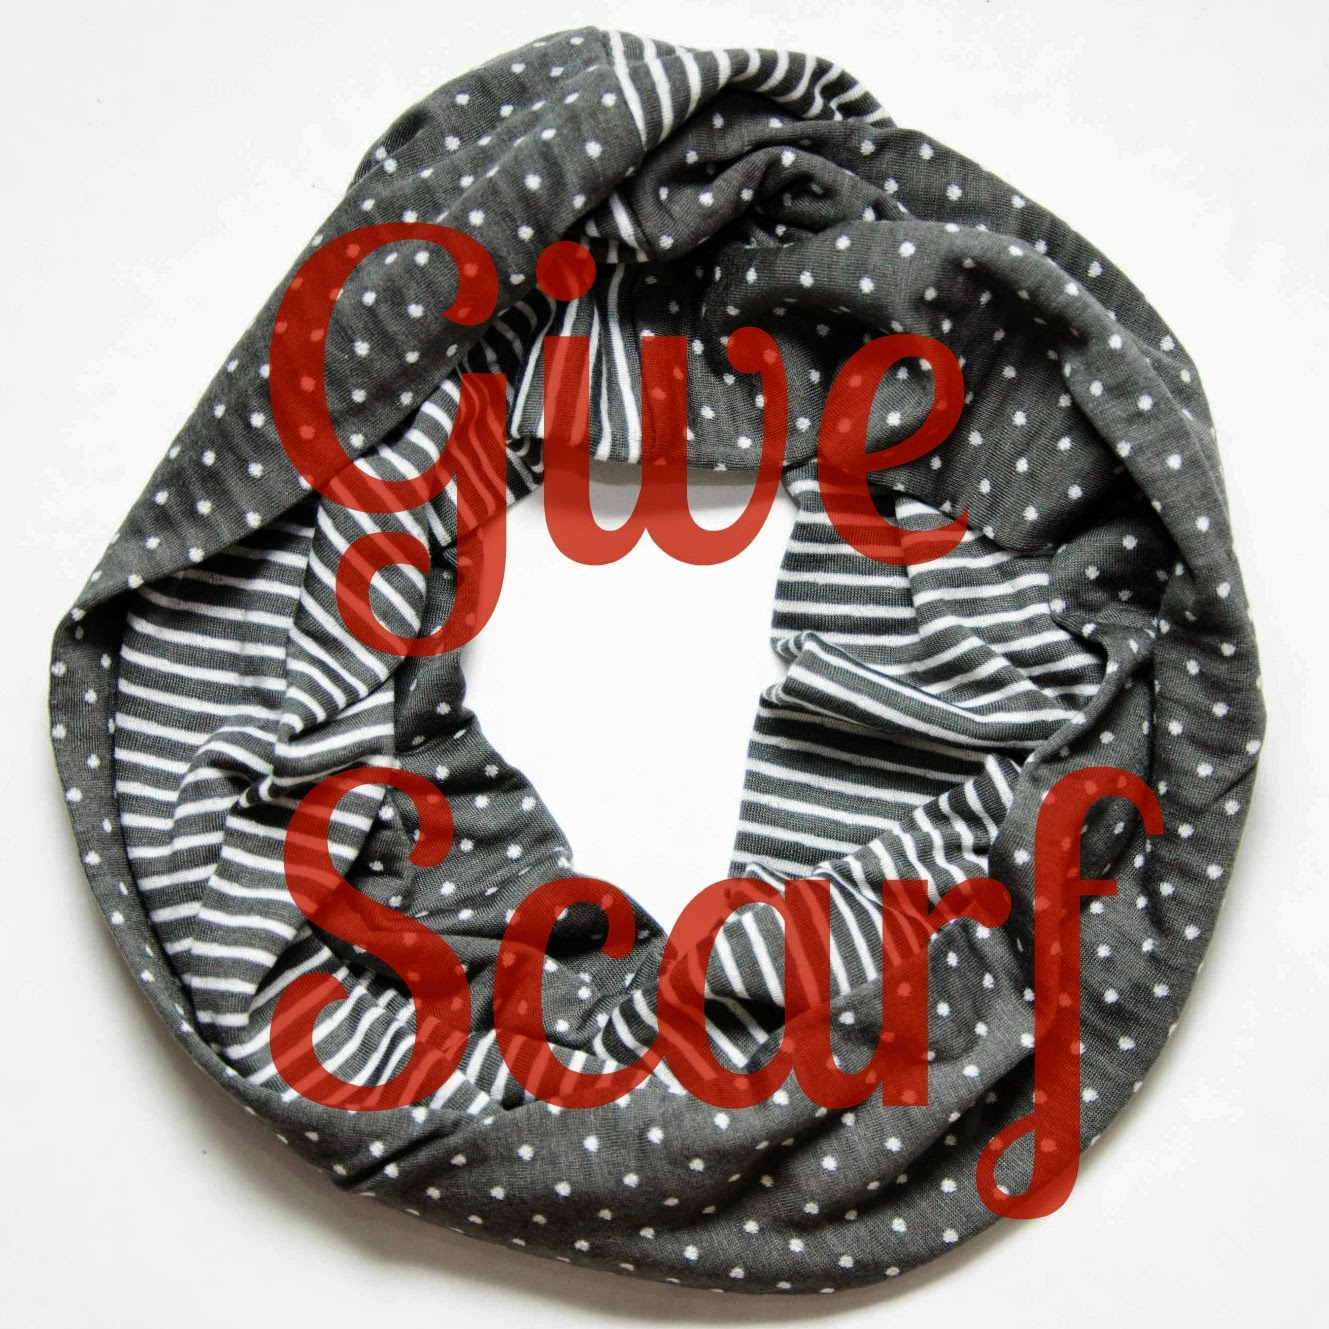 https://www.etsy.com/listing/204378483/december-give-scarf-womens-gray-white?ref=shop_home_active_1